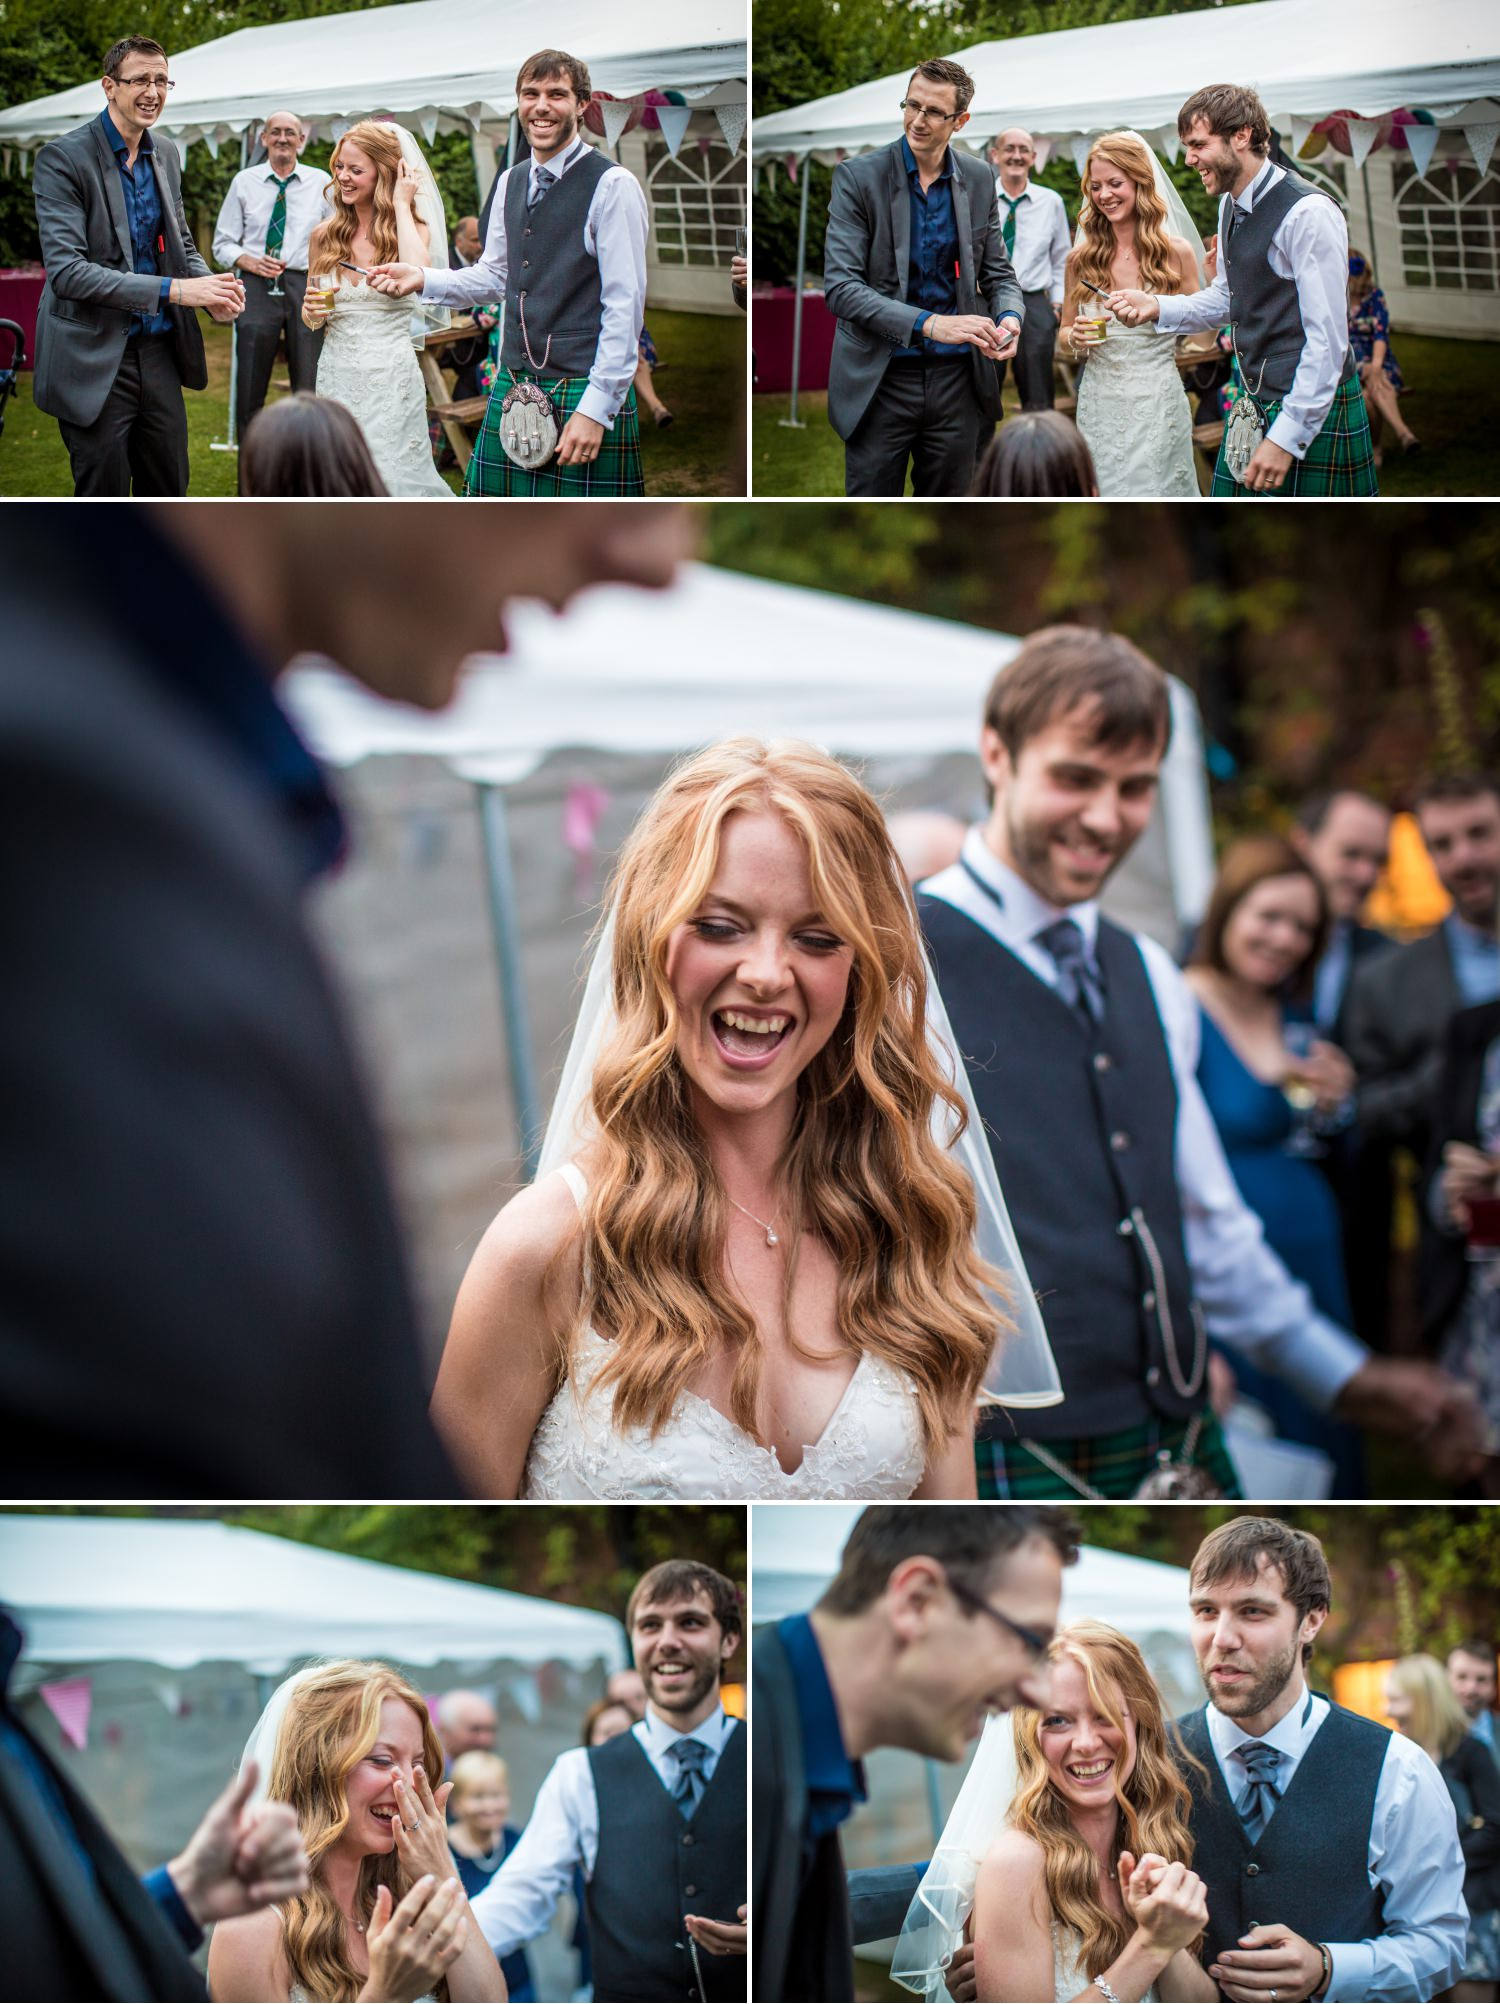 Wedding photography guests mingling at Cheshire venue Hundred House Hotel